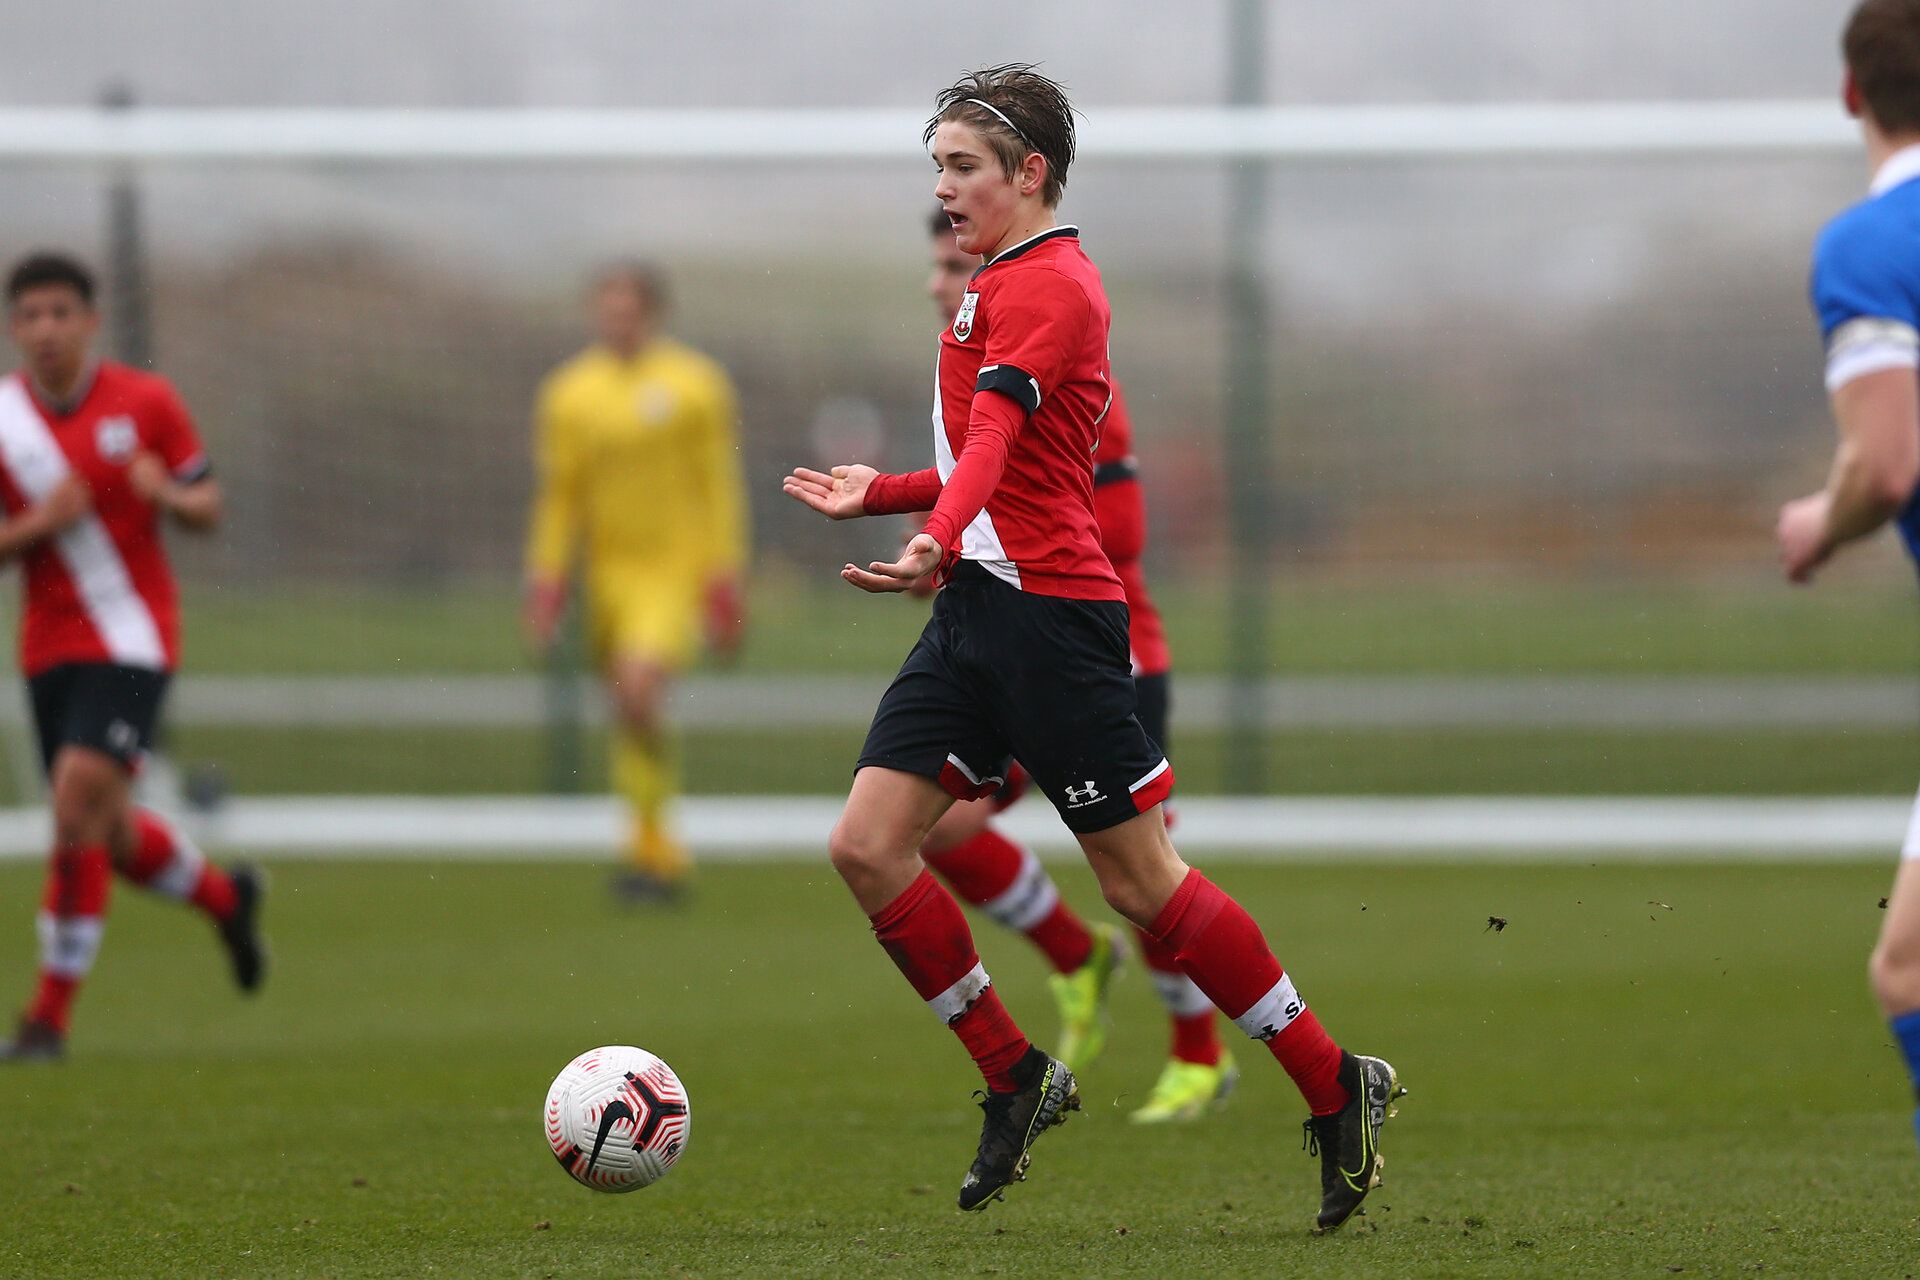 BRIGHTON, ENGLAND - FEBRUARY 16: Dominic Ballard of Southampton during the Premier League U18s match between Brighton & Hove Albion and Southampton U18 at The Amex Elite Football Performance Center on February 16, 2021 in Brighton, England. (Photo by Isabelle Field/Southamtpon FC)